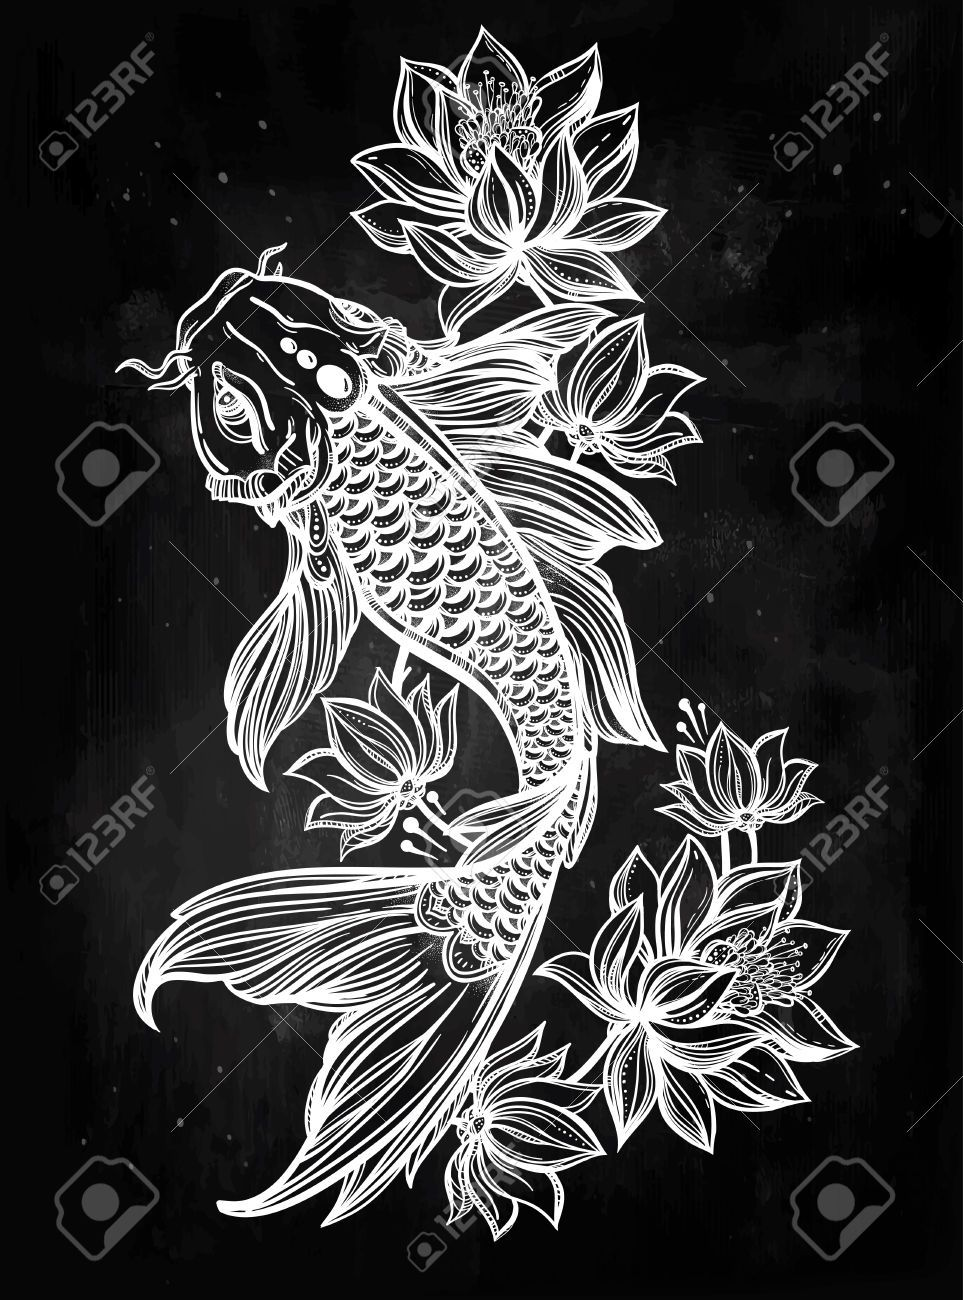 koi fish with lotus flower drawing Google Search Koi